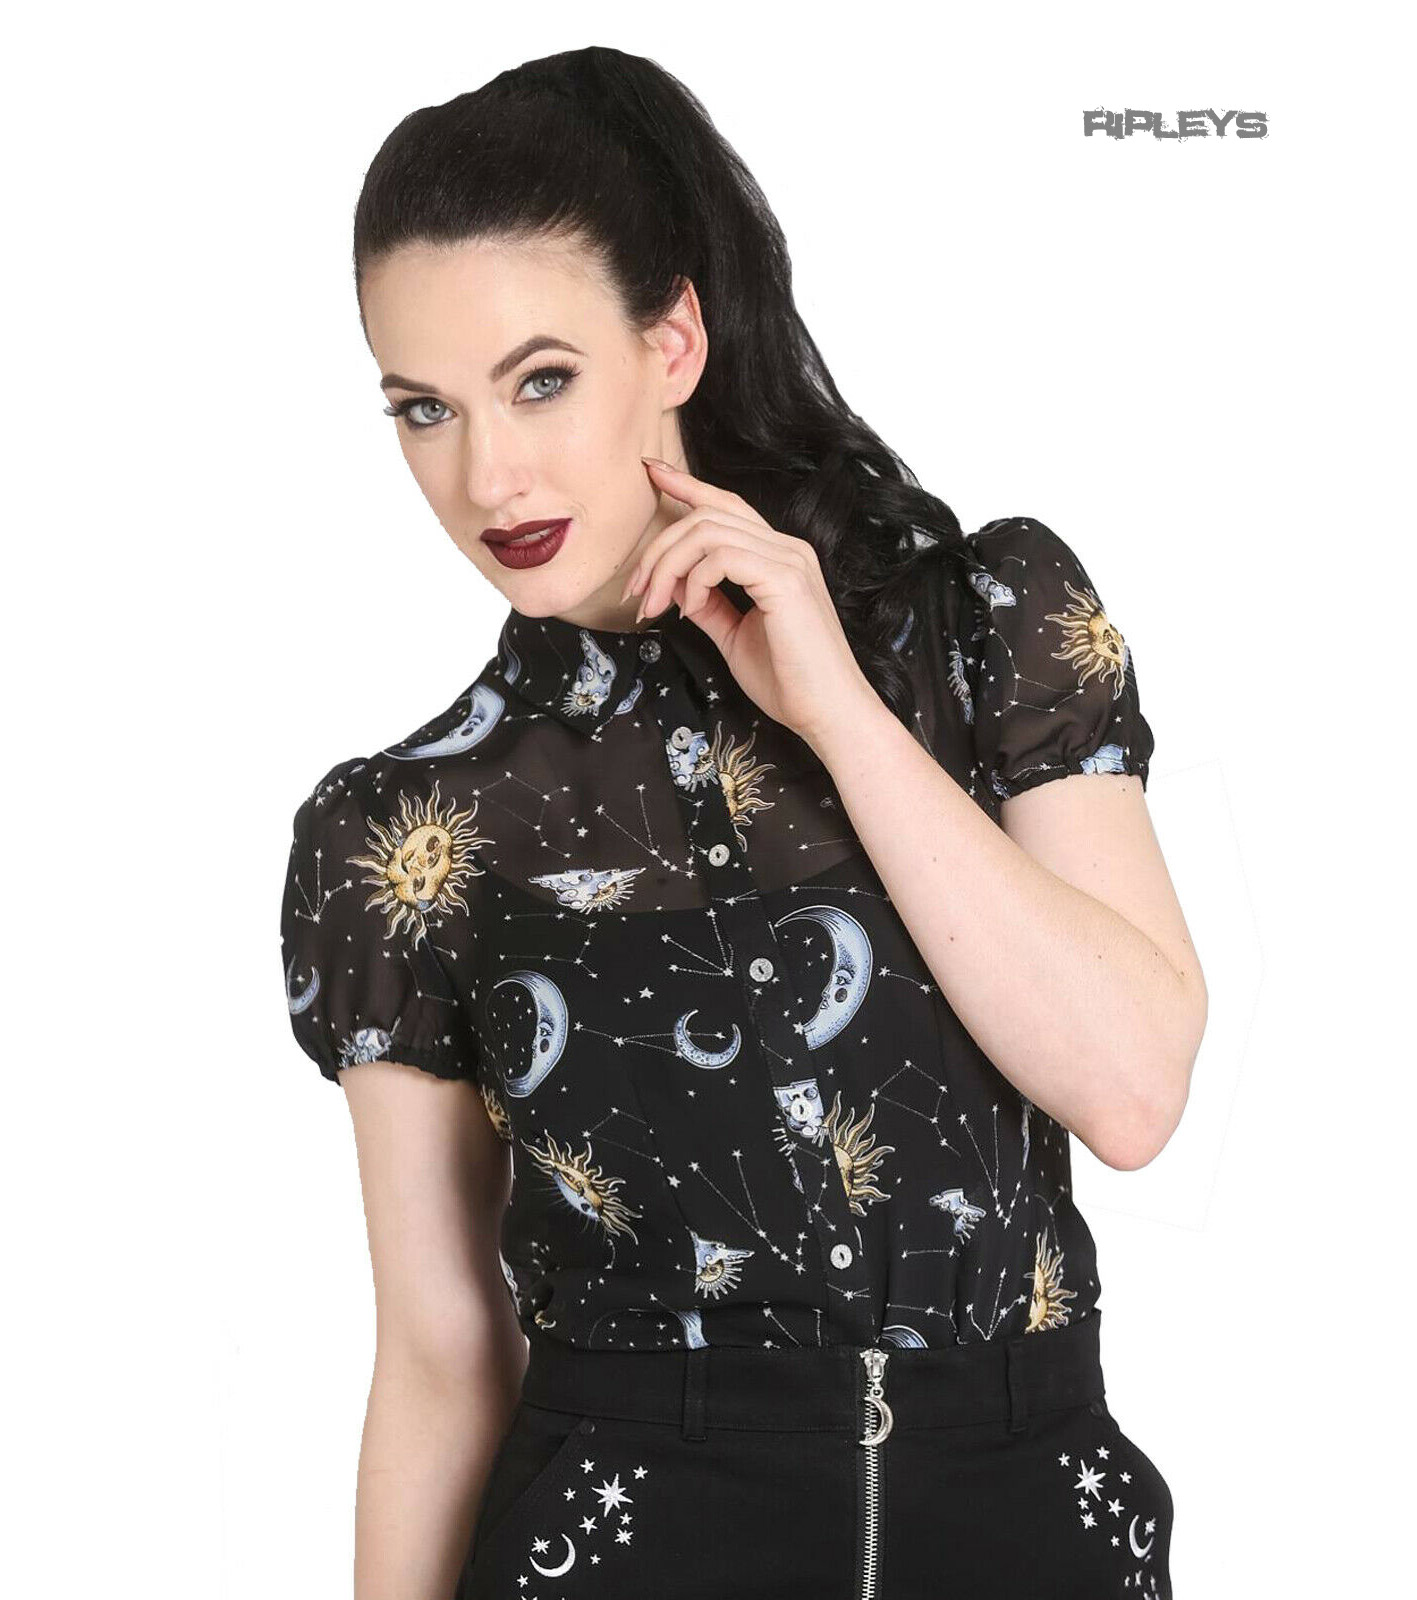 Hell-Bunny-50s-Shirt-Top-Gothic-Black-Sun-Moon-Stars-SOLARIS-Blouse-All-Sizes thumbnail 44